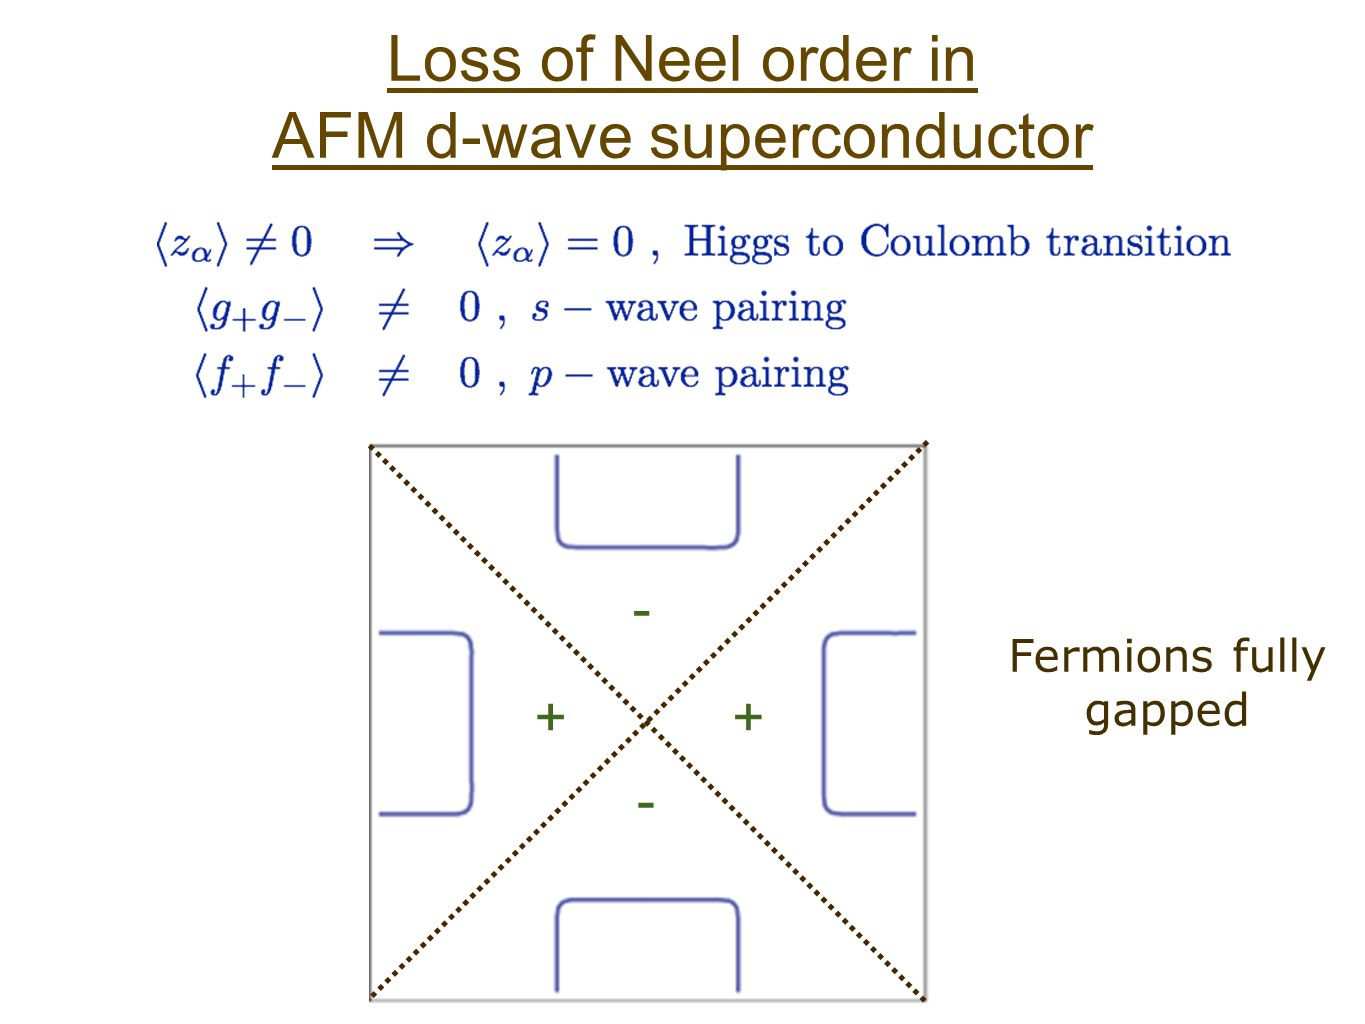 Loss of Neel order in AFM d-wave superconductor Fermions fully gapped